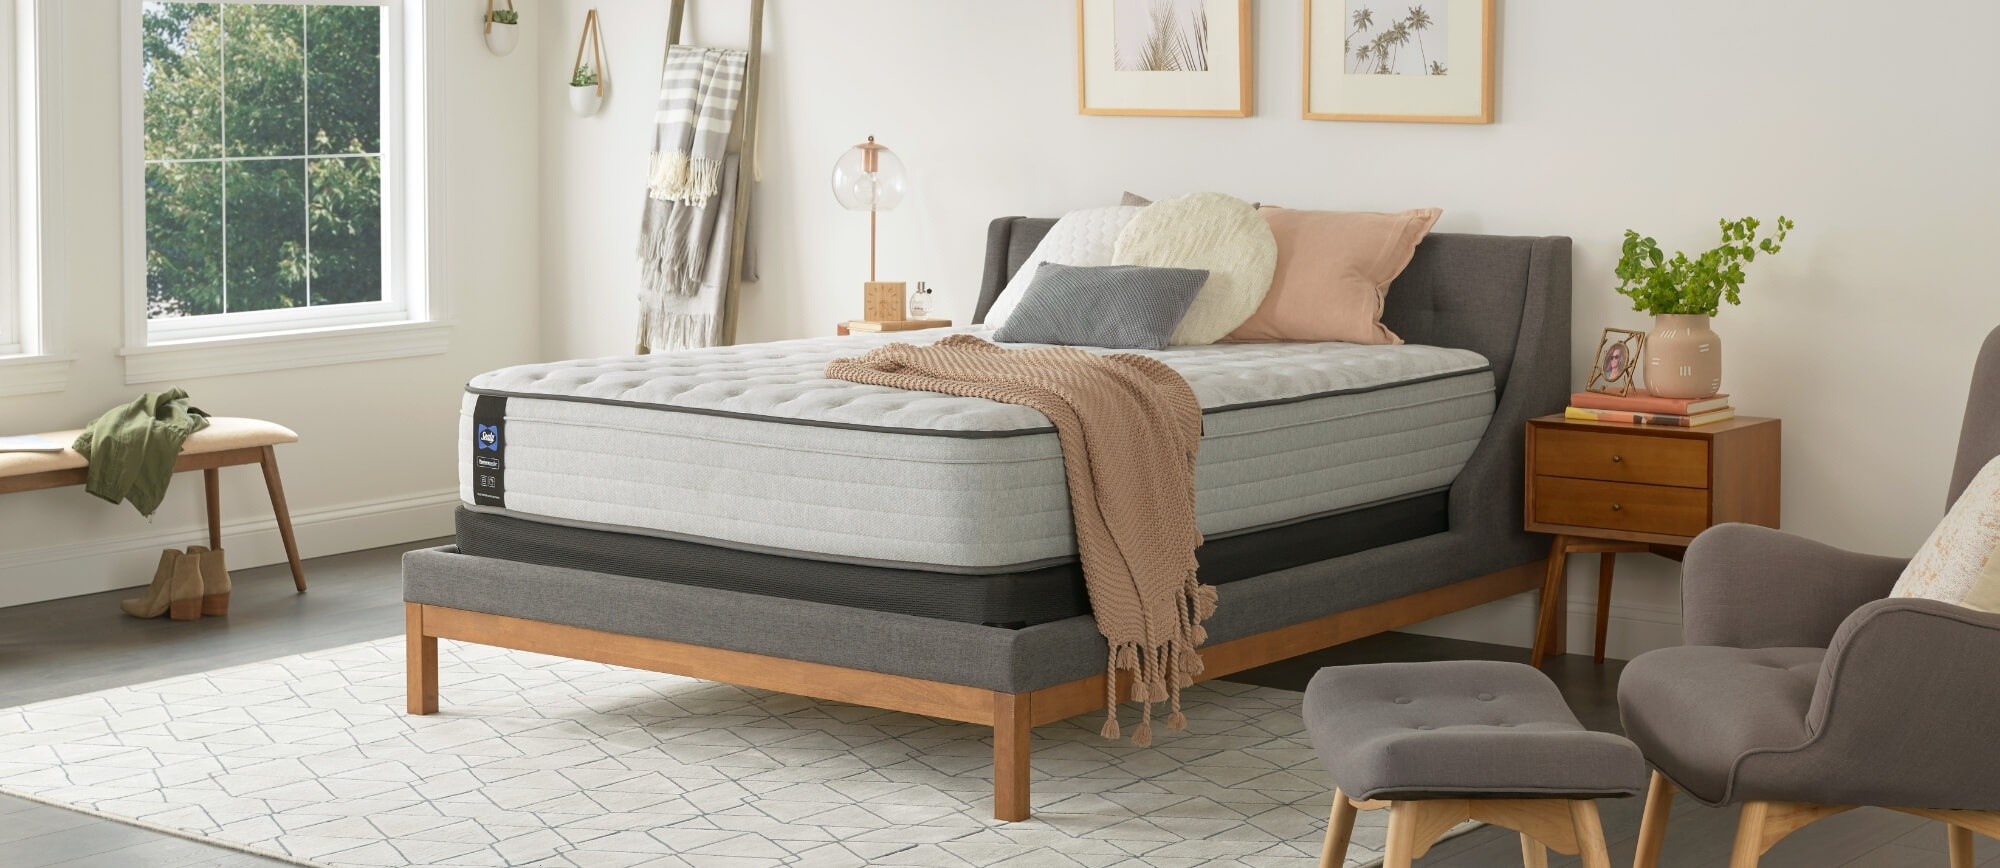 A Posturepedic mattress in a styled room